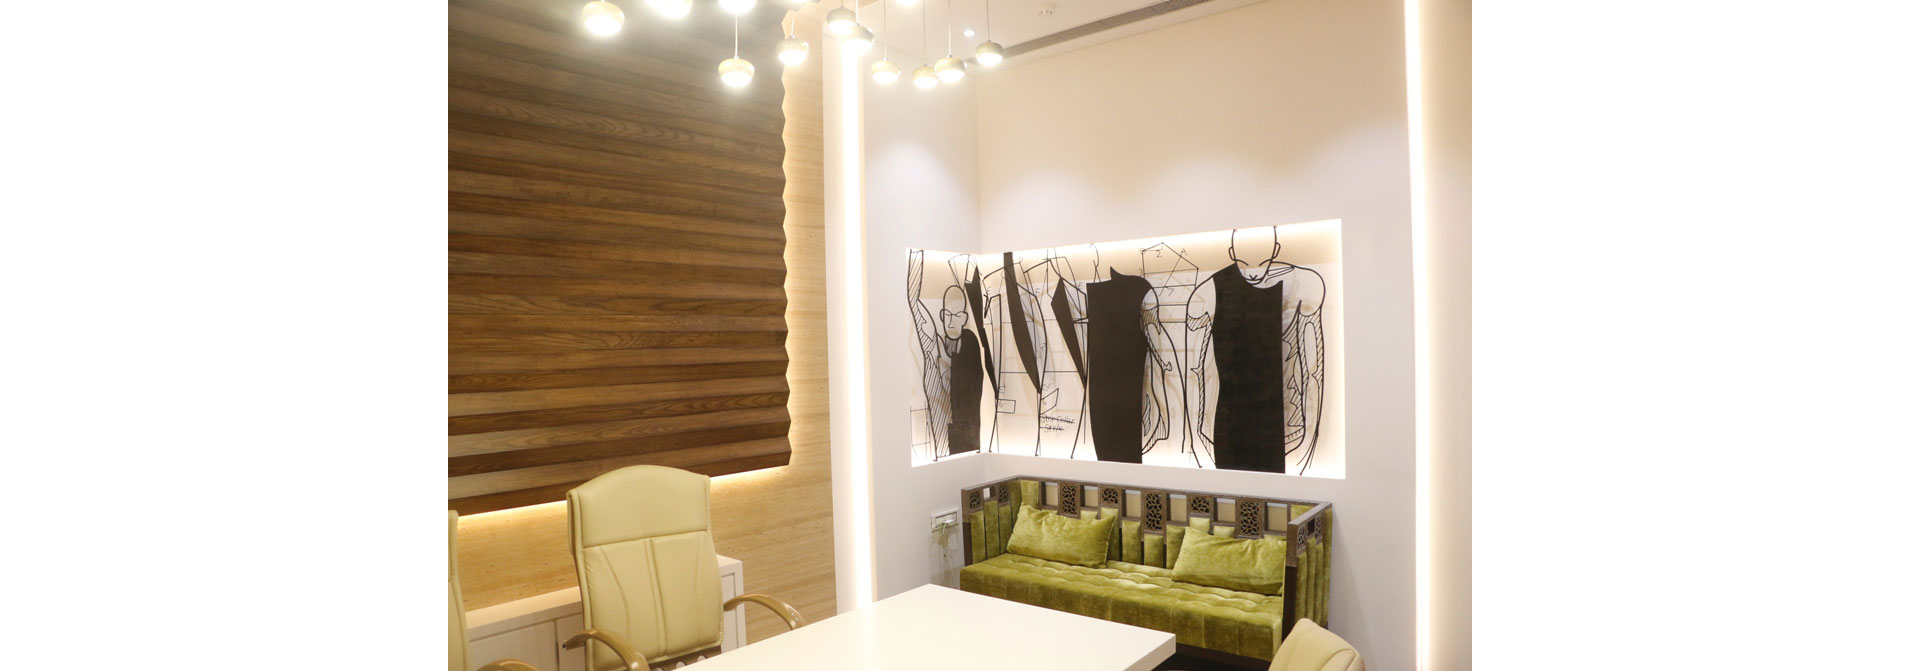 Bennevis Fashion Store Gallery images